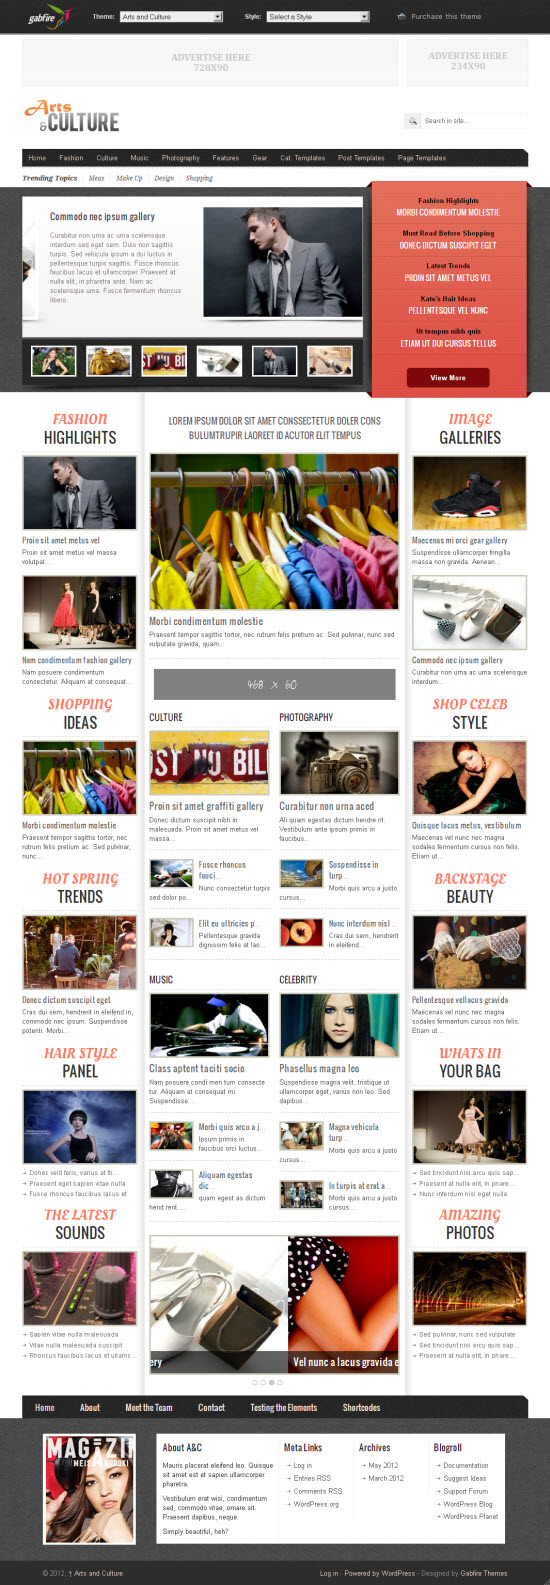 Arts and Culture WordPress Theme